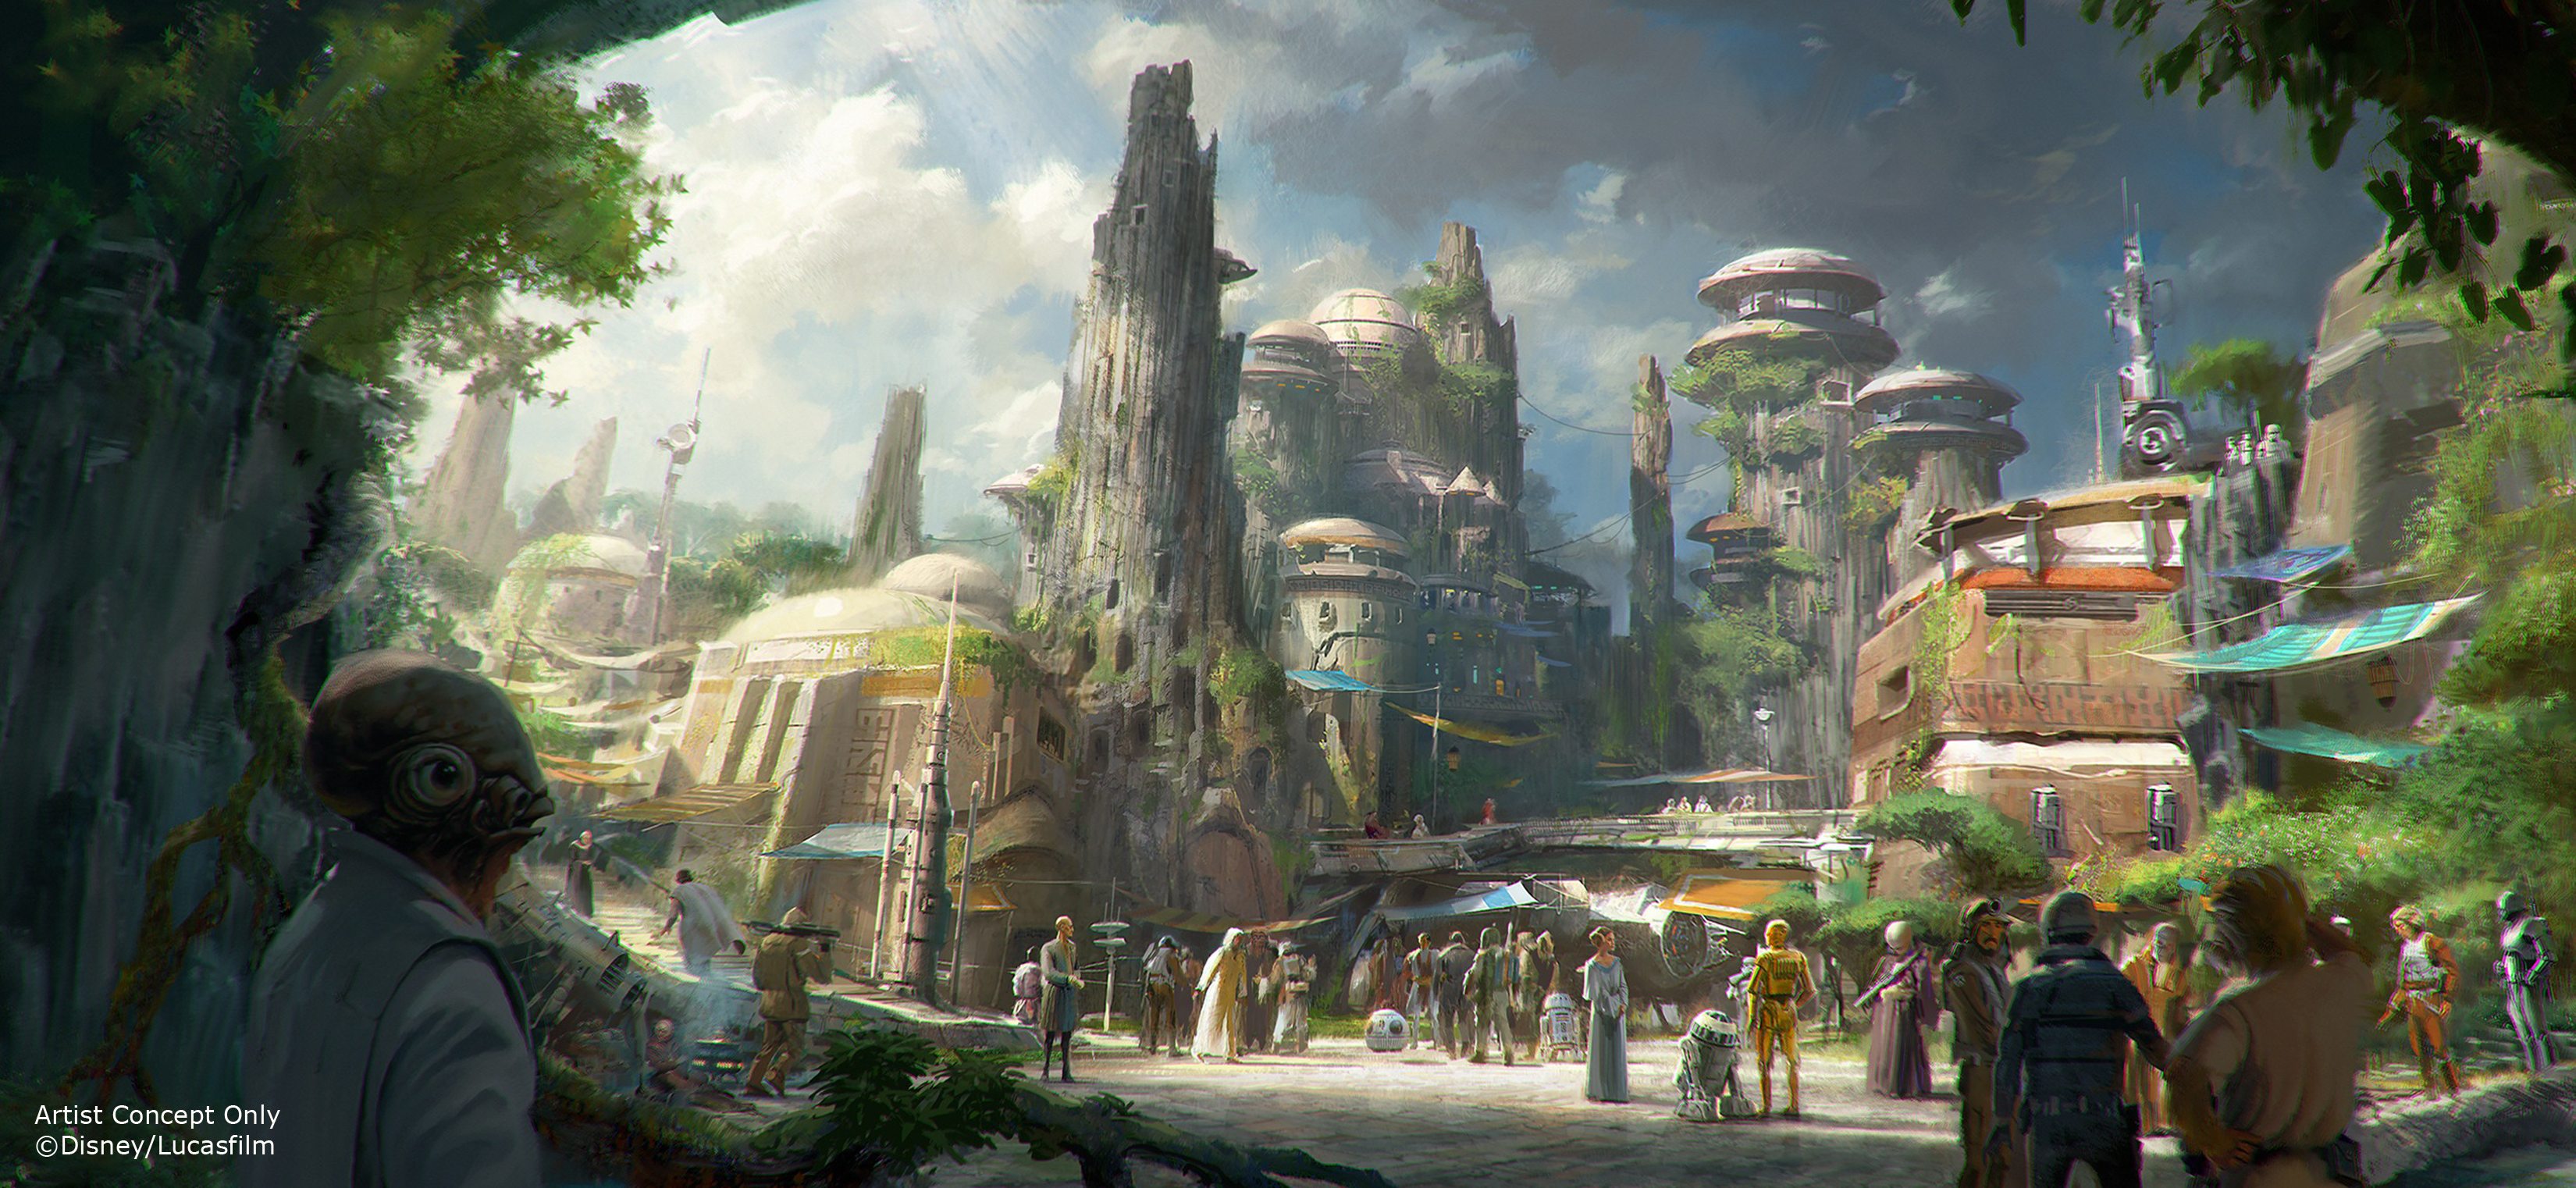 Handout image provided by Disney Parks, Walt Disney Company Chairman and CEO Bob Iger announced at D23 EXPO 2015 that Star Wars-themed lands will be coming to Disneyland park in Anaheim, California and Disney's Hollywood Studios in Orlando, Florida, creating Disney's largest single-themed land expansions ever at 14-acres each. The attractions will transport guests to a never-before-seen planet, a remote trading port and one of the last stops before wild space where Star Wars characters and their stories come to life.  These authentic lands will have two signature attractions including the ability to take the controls of one of the most recognizable ships in the galaxy, the Millennium Falcon, on a customized secret mission and an epic Star Wars adventure that puts guests in the middle of a climactic battle.